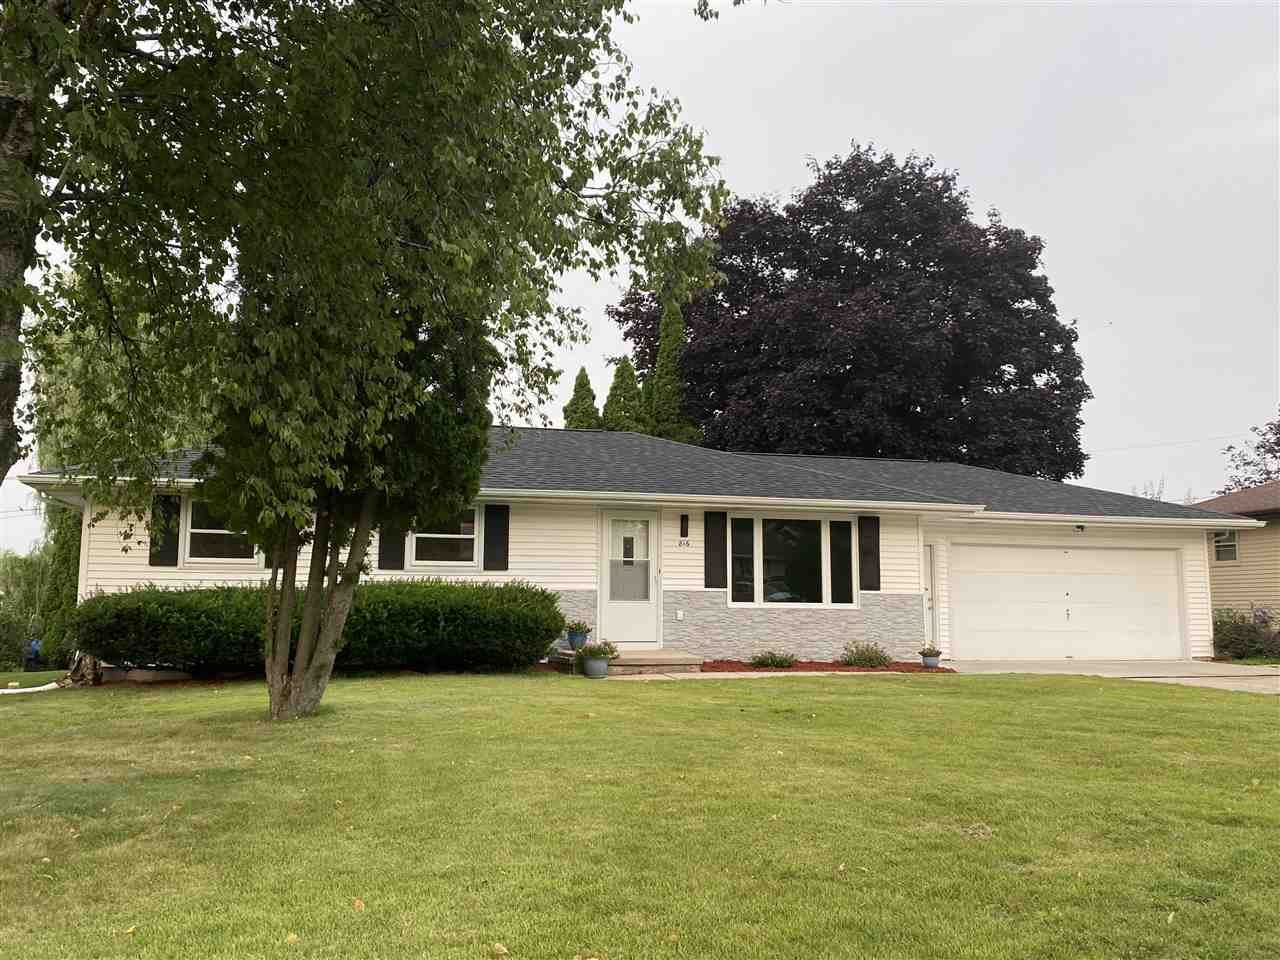 816 MARYDALE Drive, Green Bay, WI 54313 - MLS#: 50244528